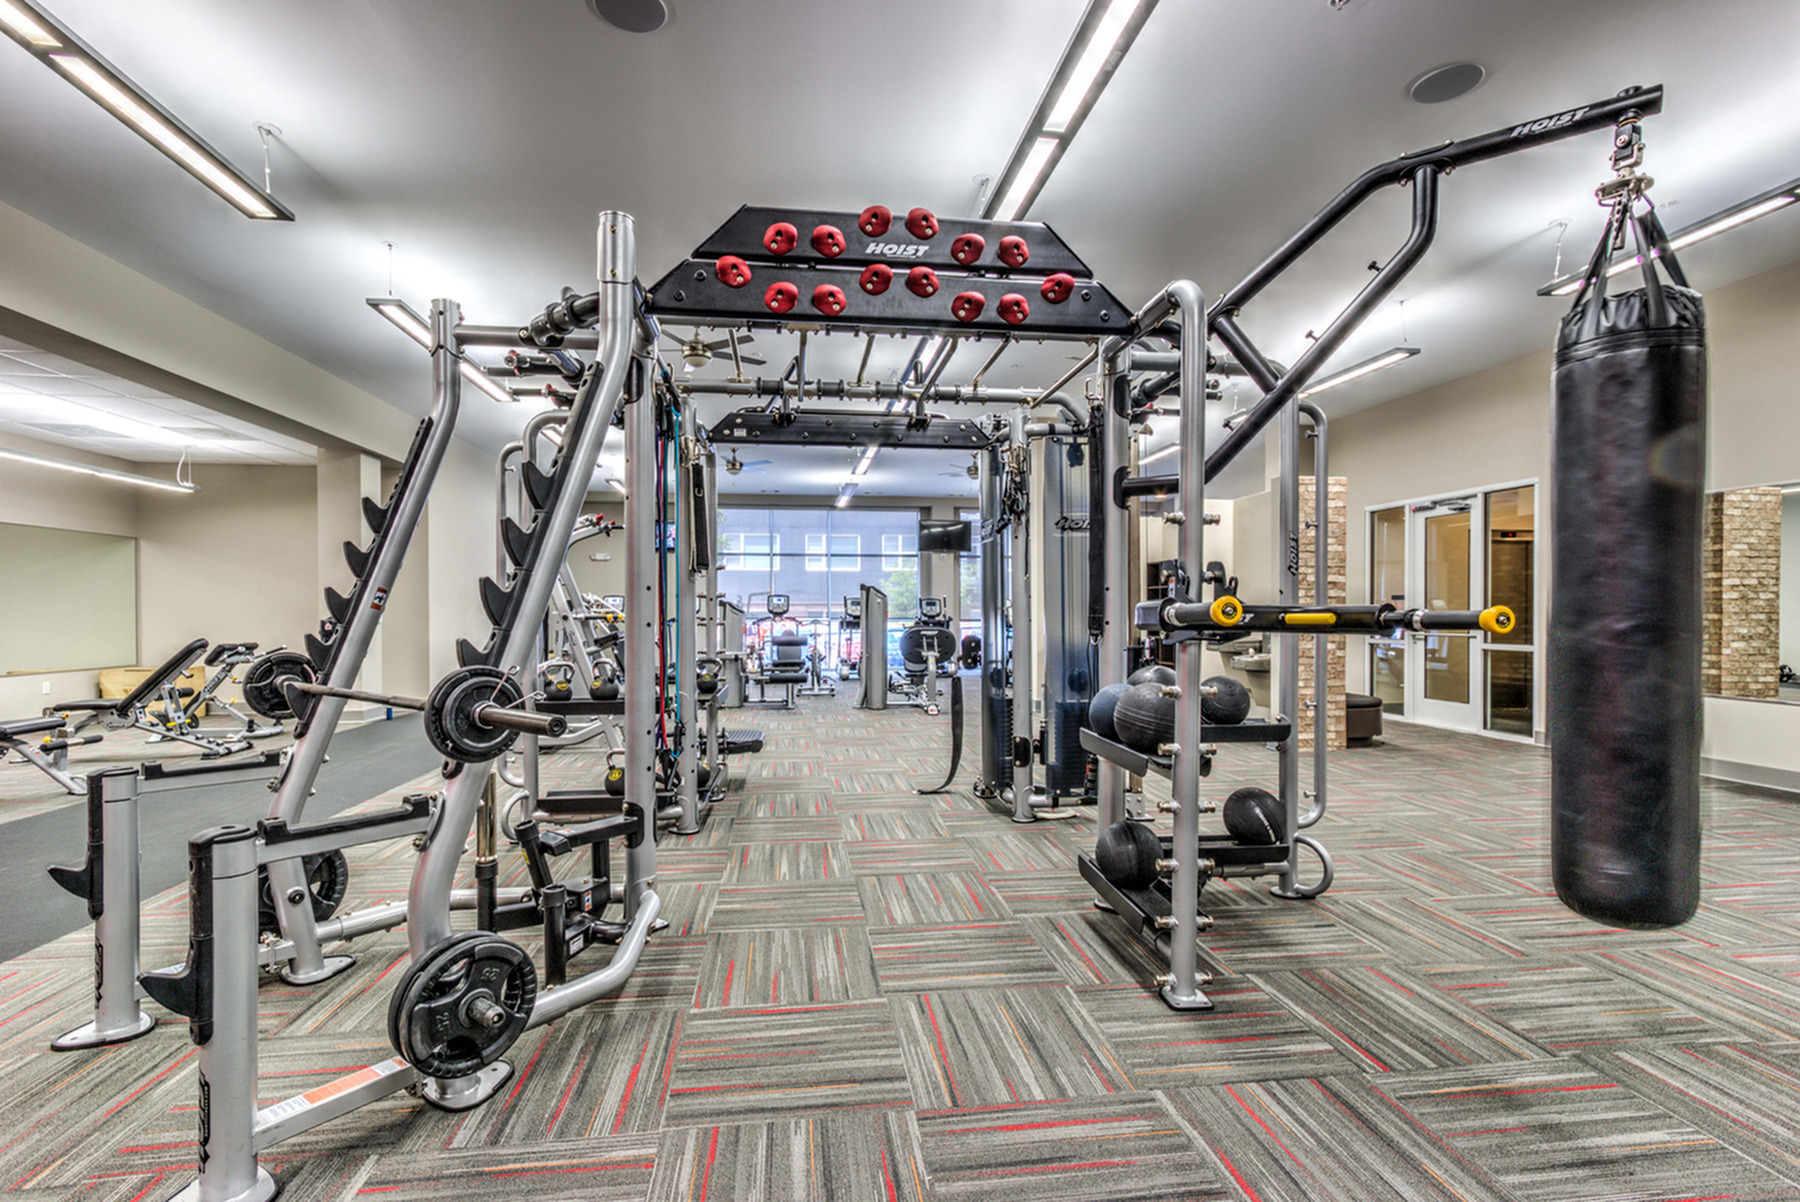 Image of 24 Hour Fitness Center for Highland Row